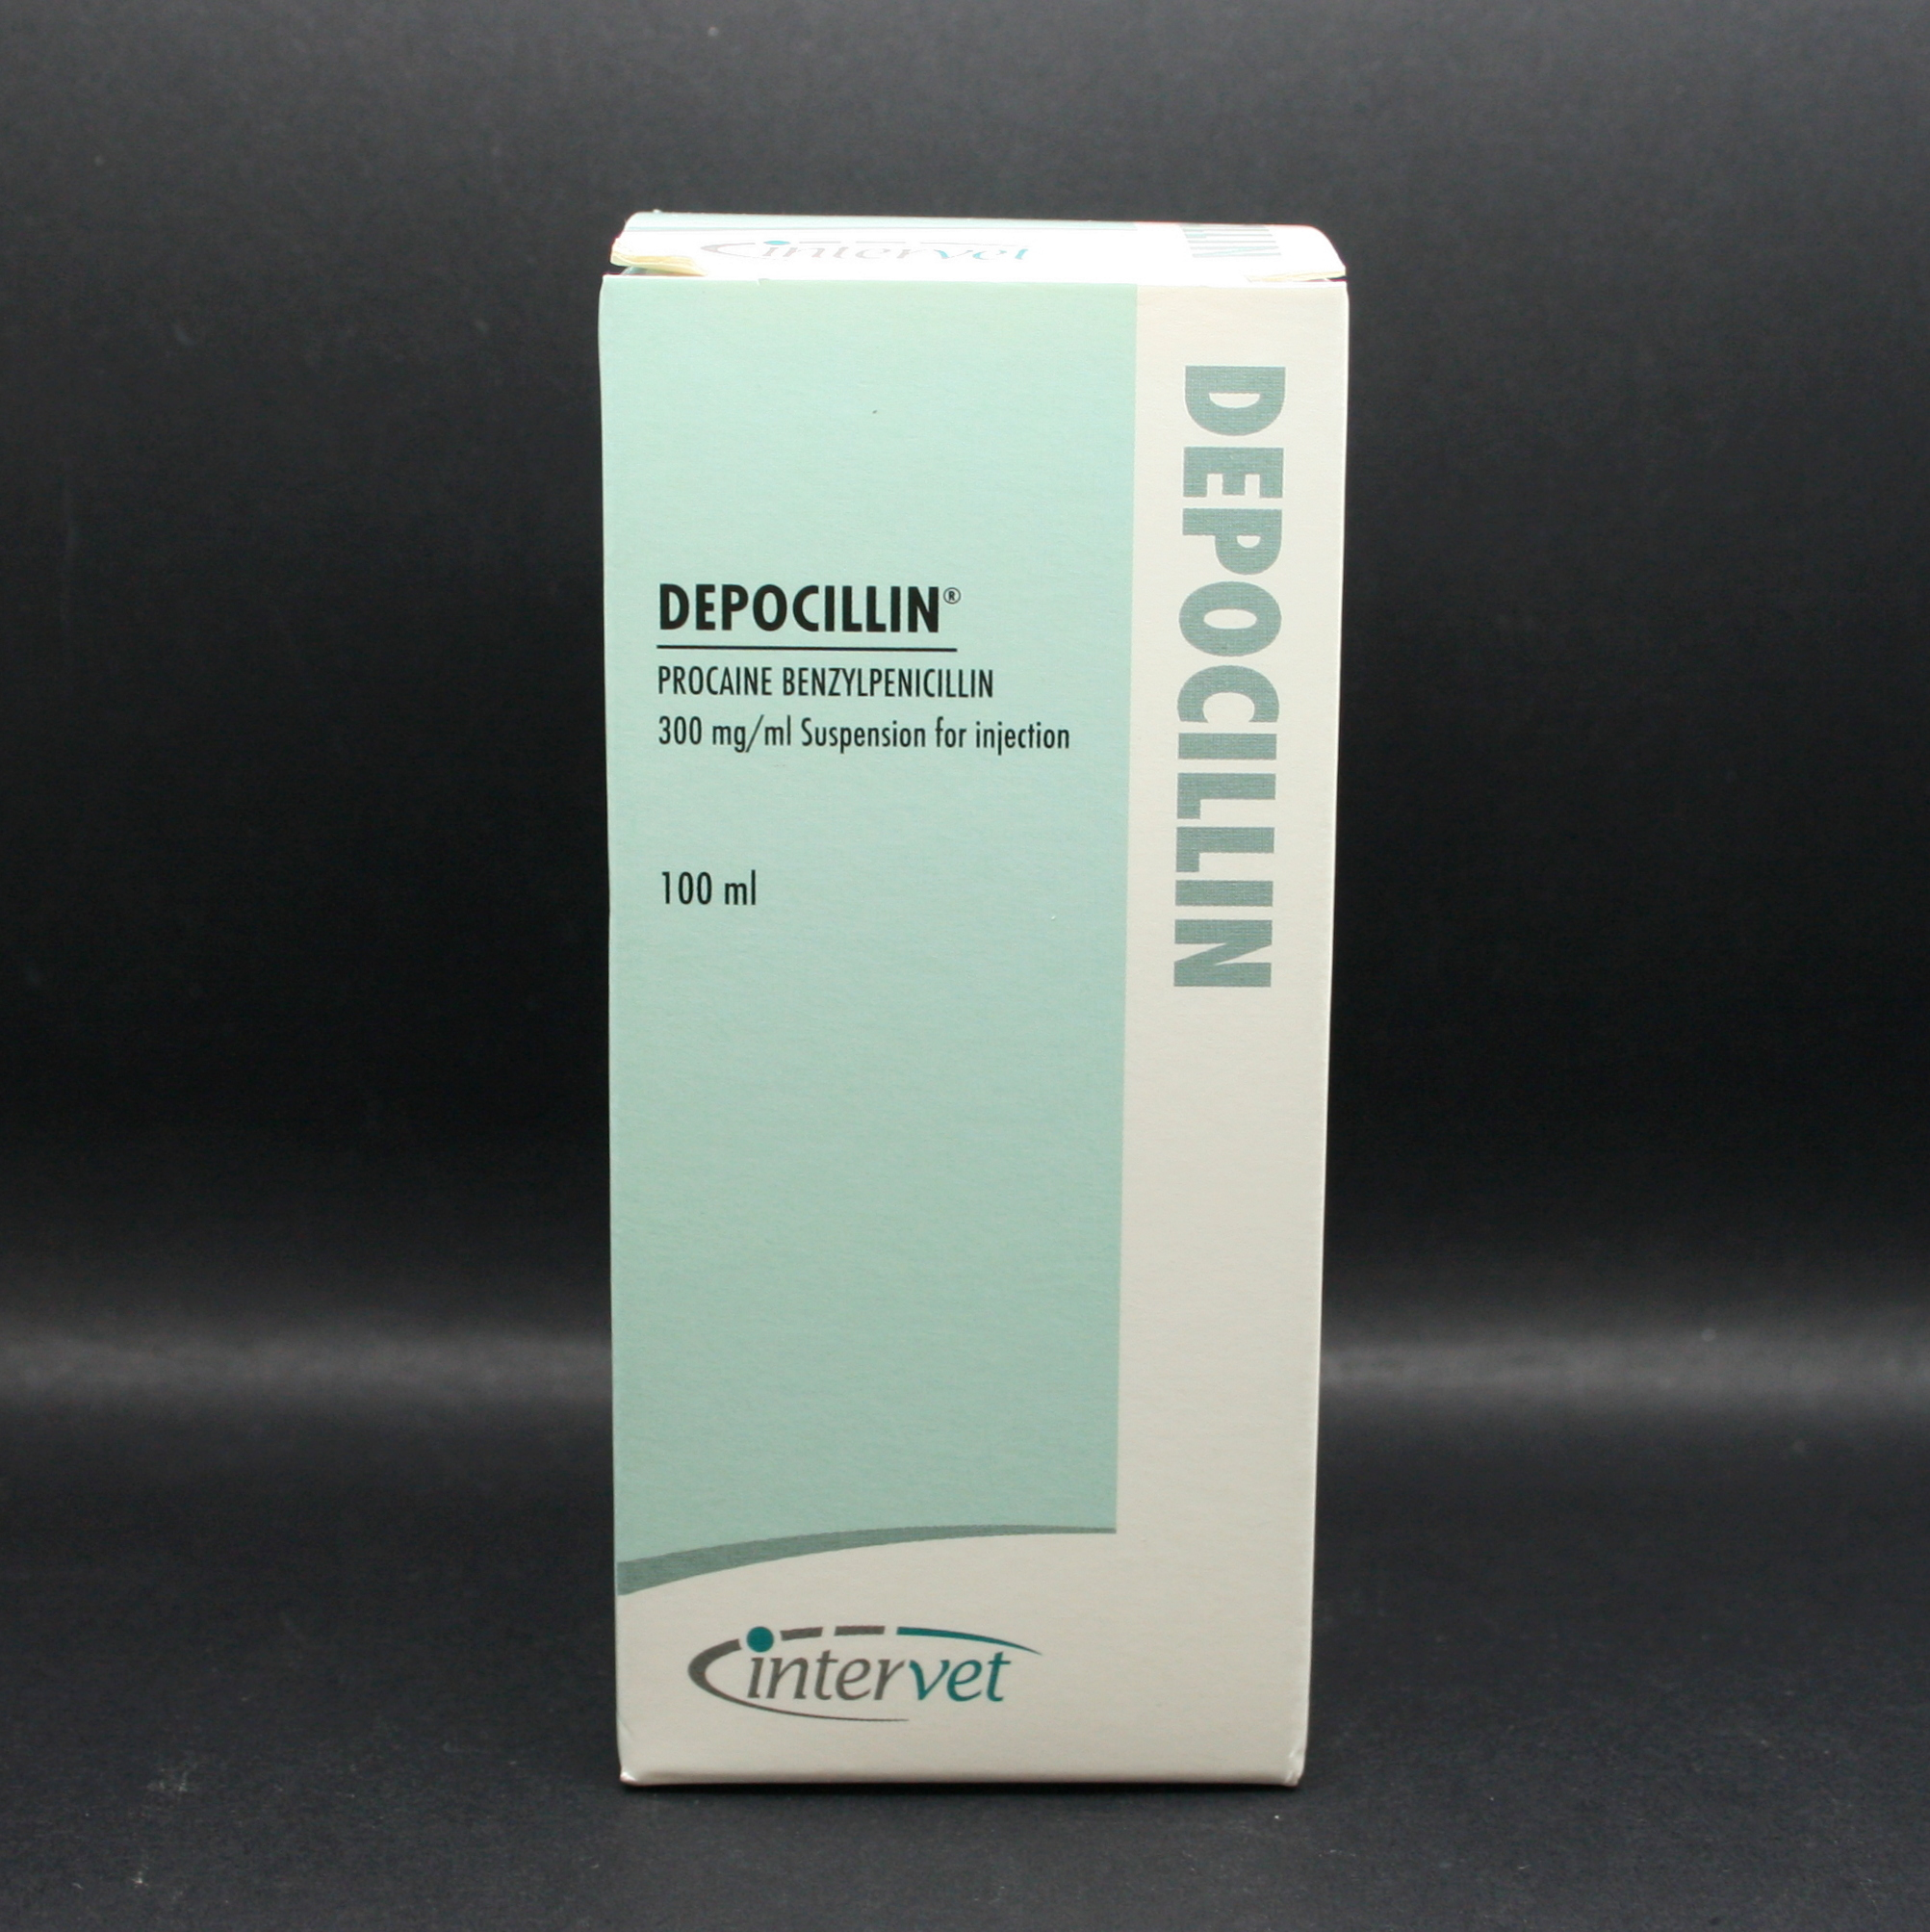 Depocillin 300mg/ml Suspension. 100ml